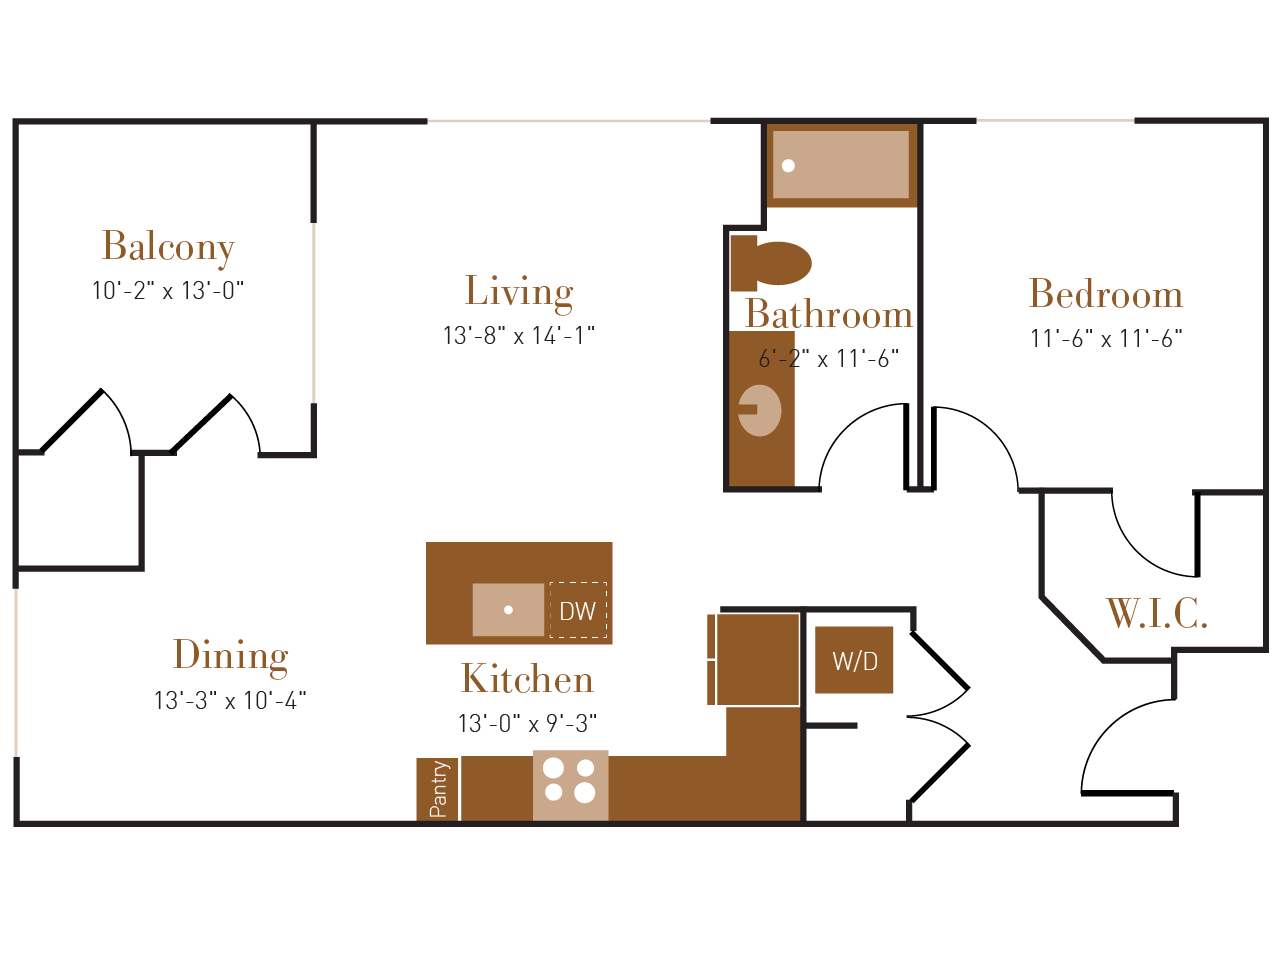 A Three B floor plan diagram. One bedroom, one bathroom, an open kitchen dining and living area, a balcony, and a washer dryer.